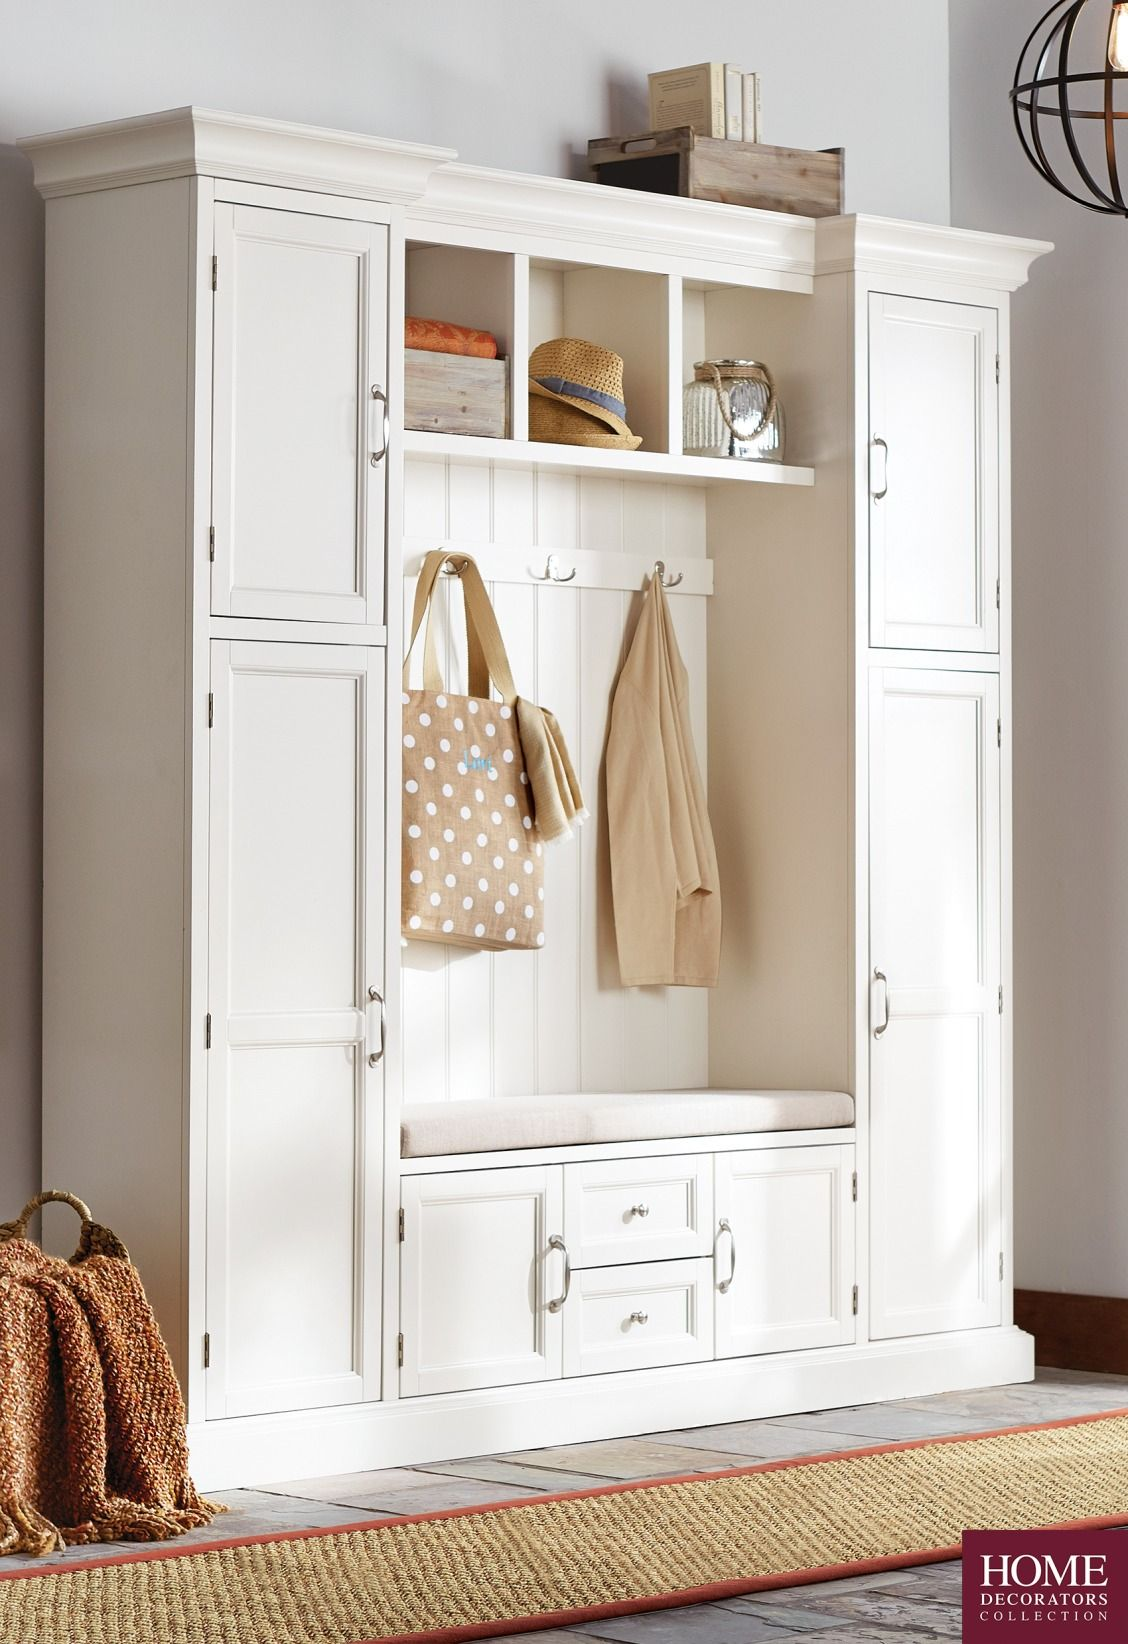 With summer winding down, getting organized for fall is a must ...